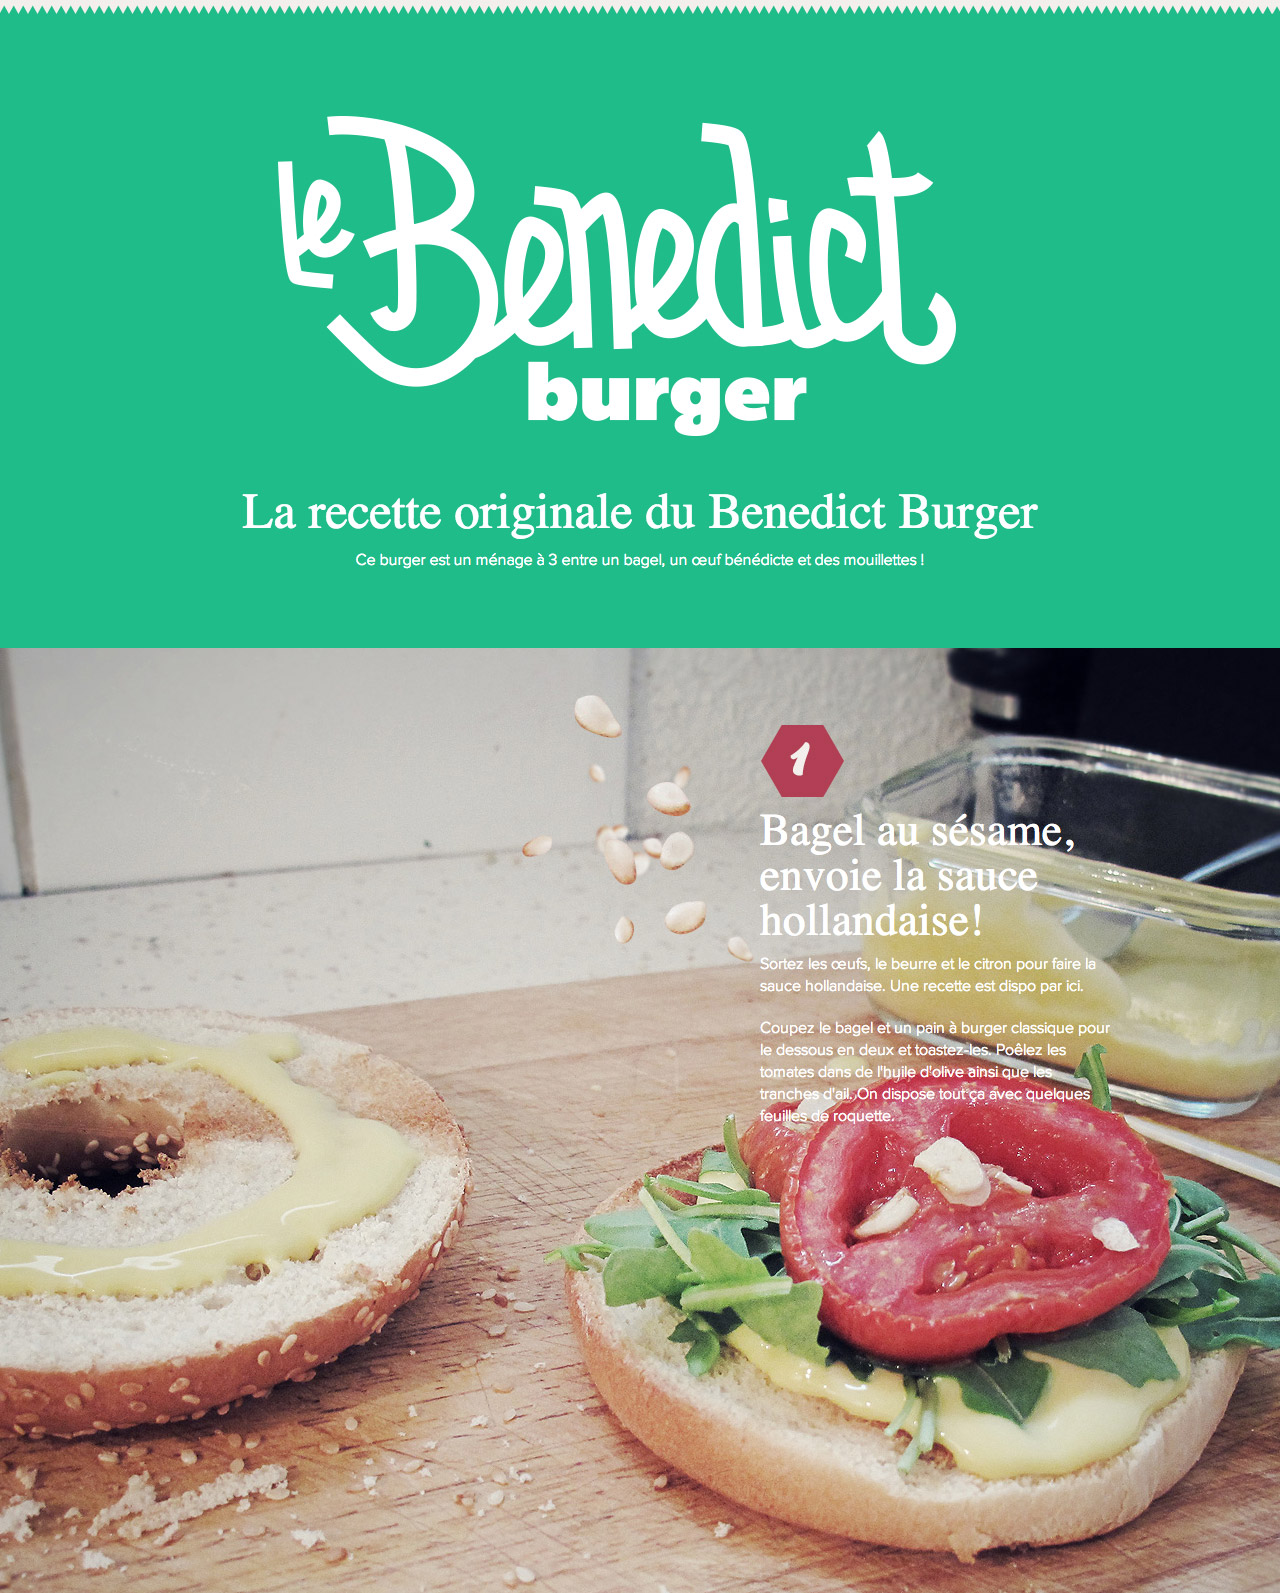 Benedict Burger recipe Website Screenshot